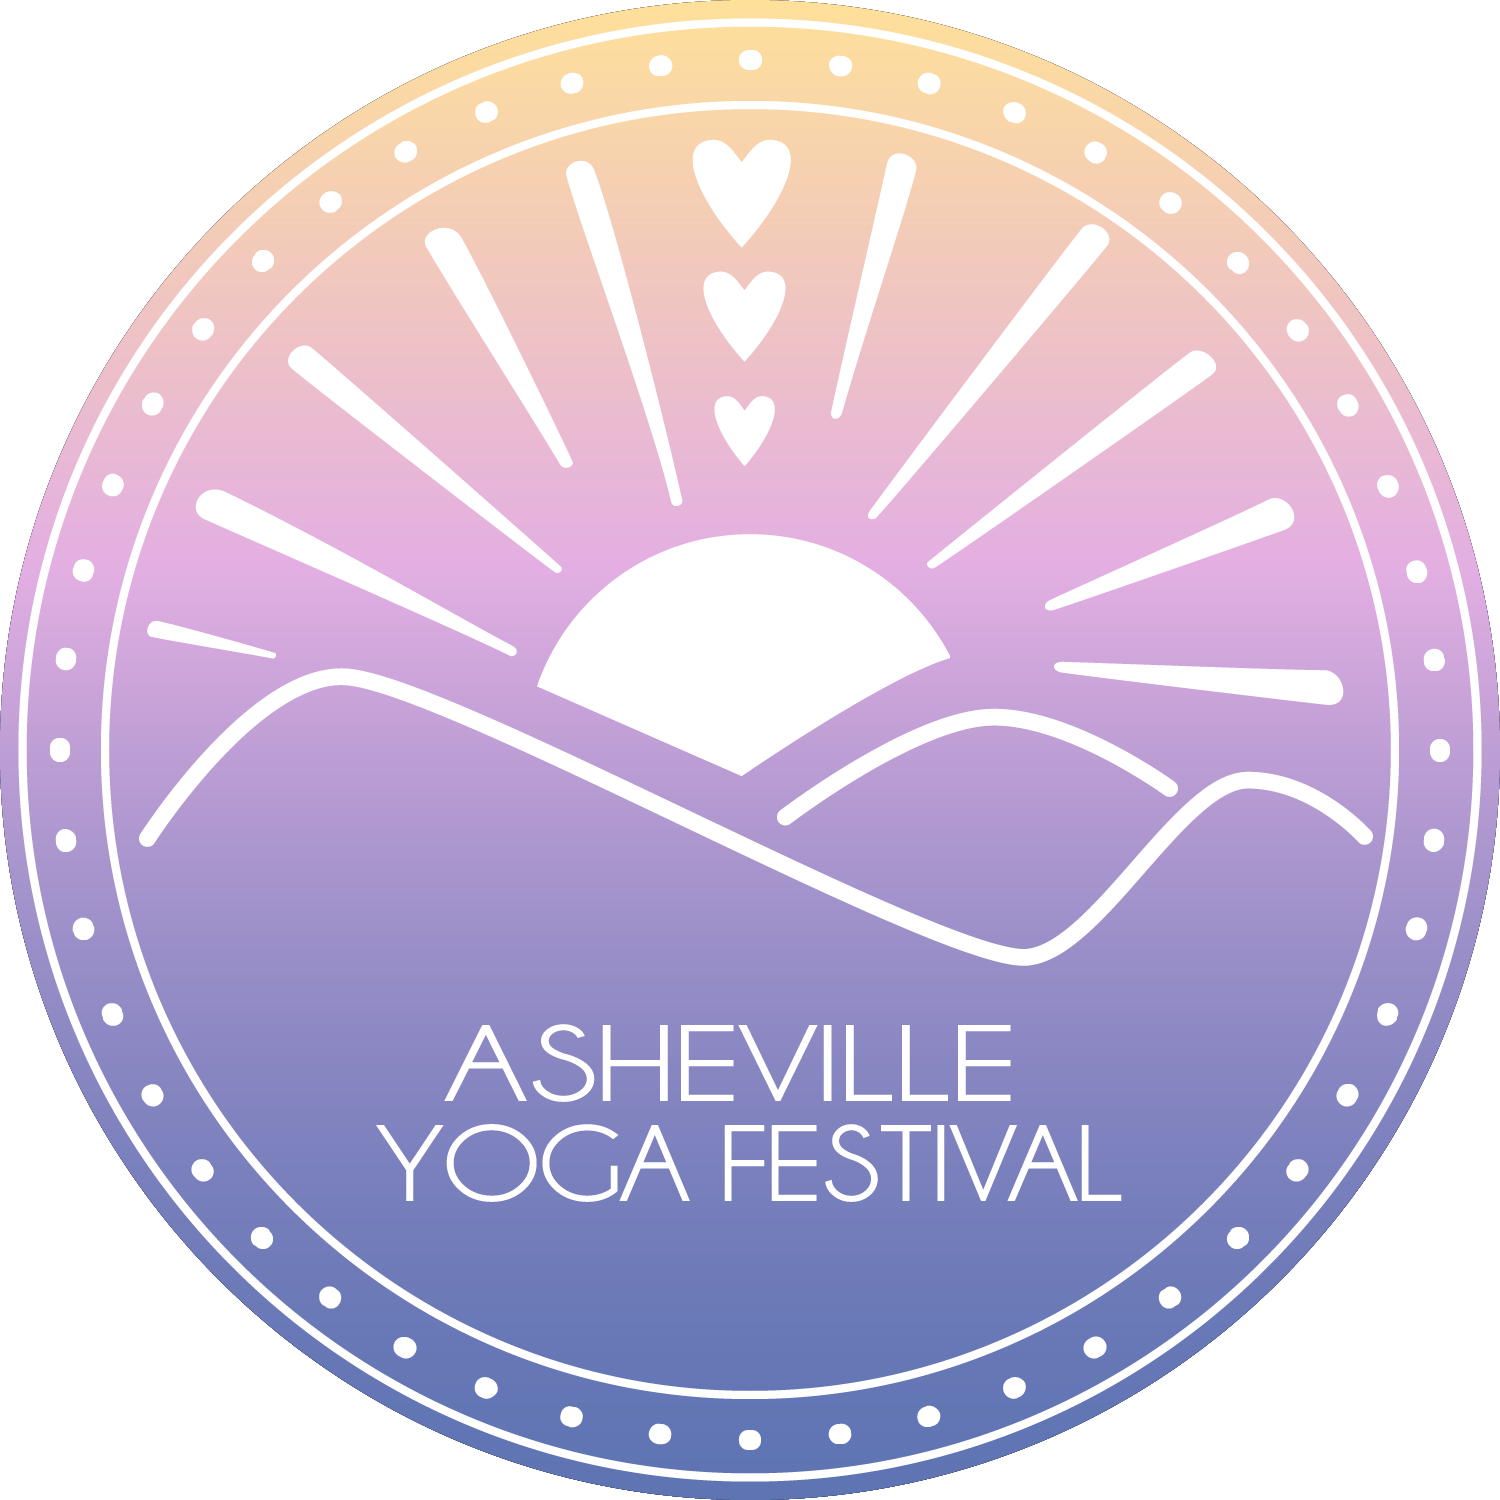 Asheville Yoga Festival - Love, Shine, Play